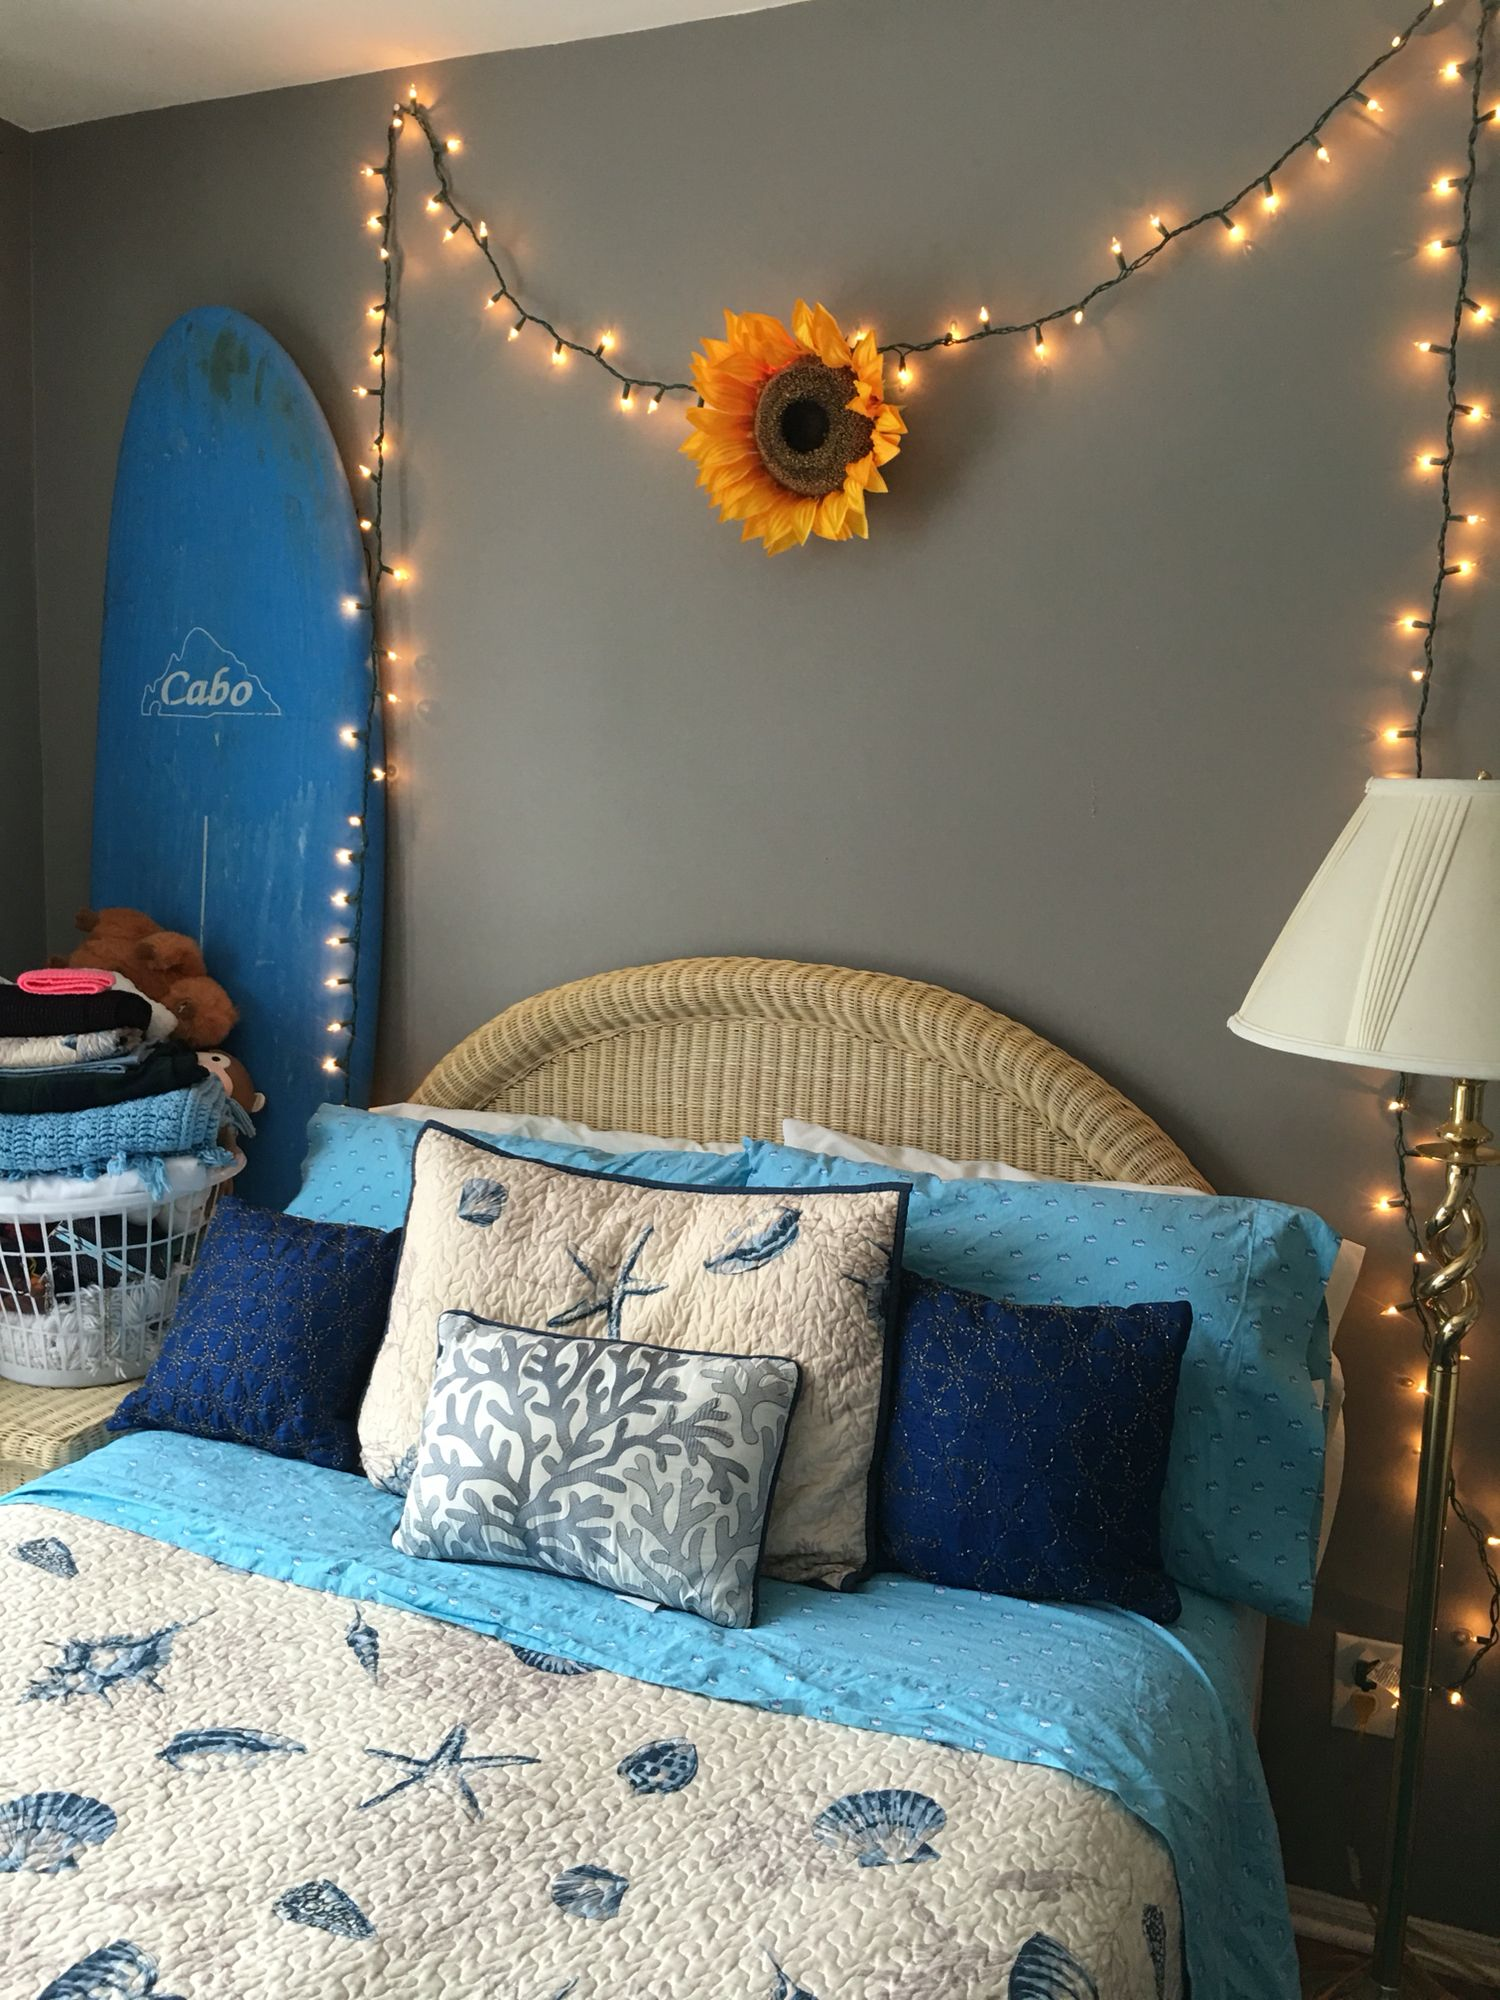 Cute bedroom ideas for college, sunflowers and beach theme. #sunflowerbedroomideas